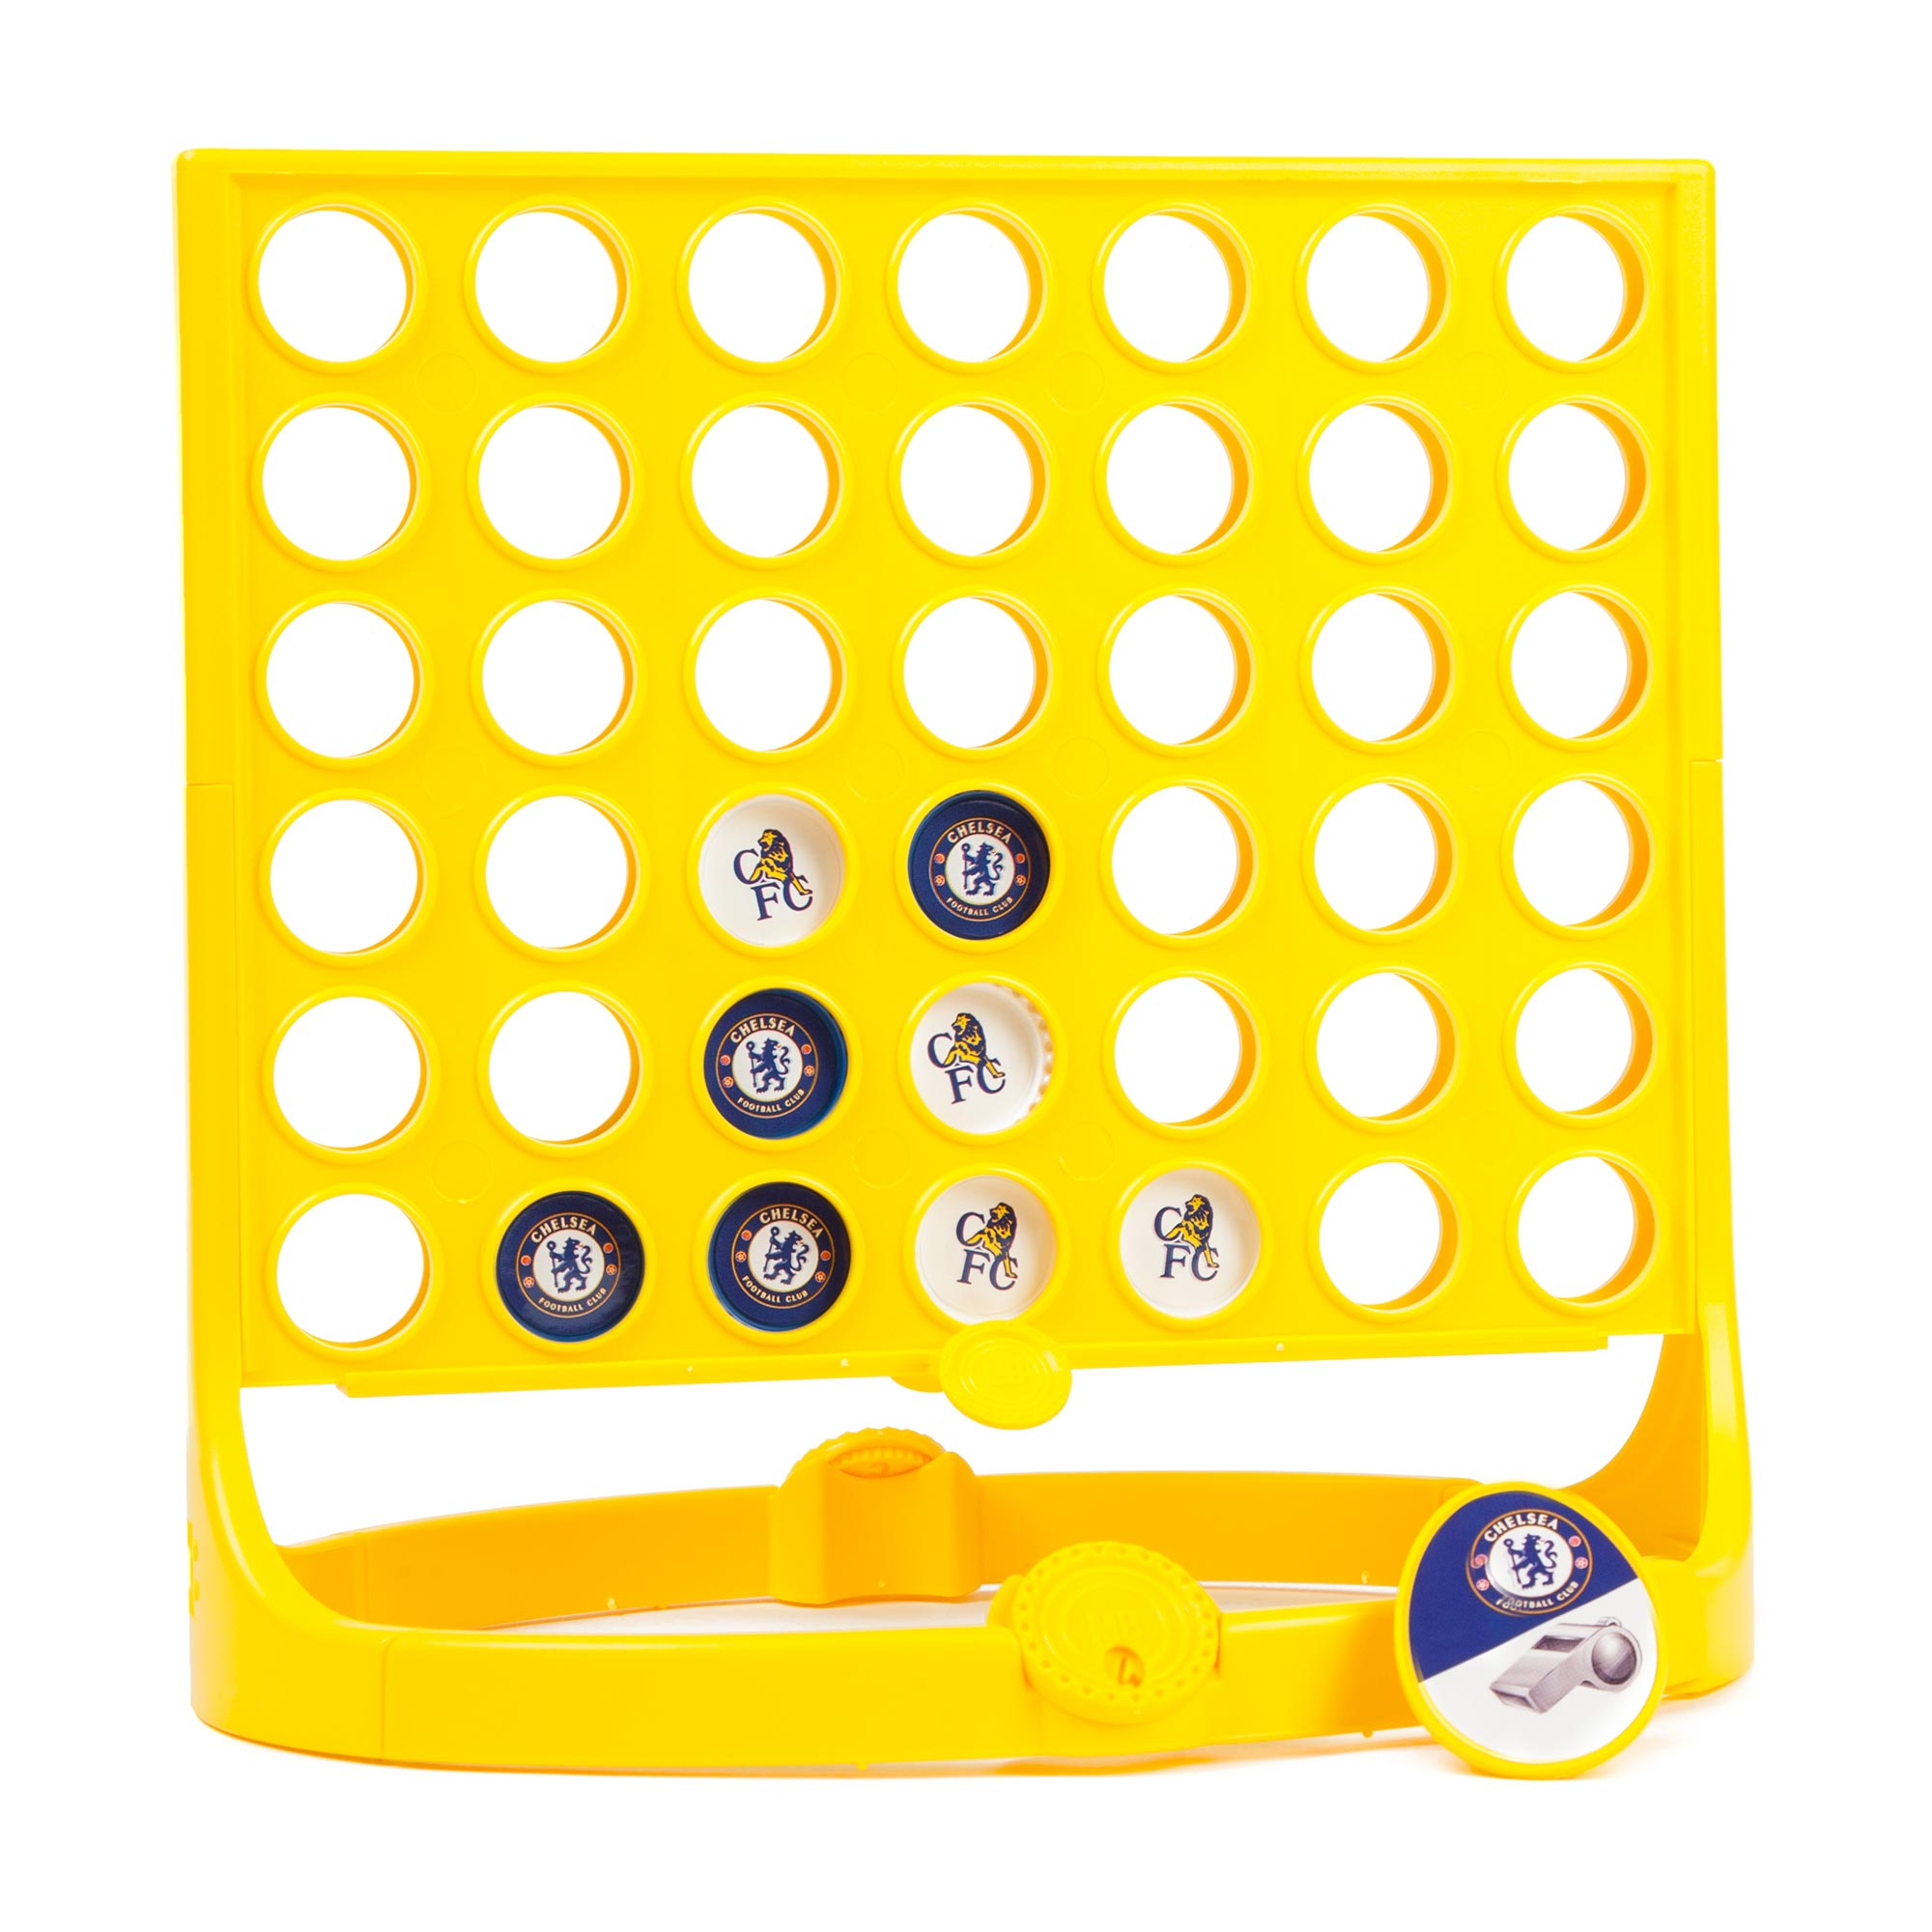 Chelsea Connect Four Game